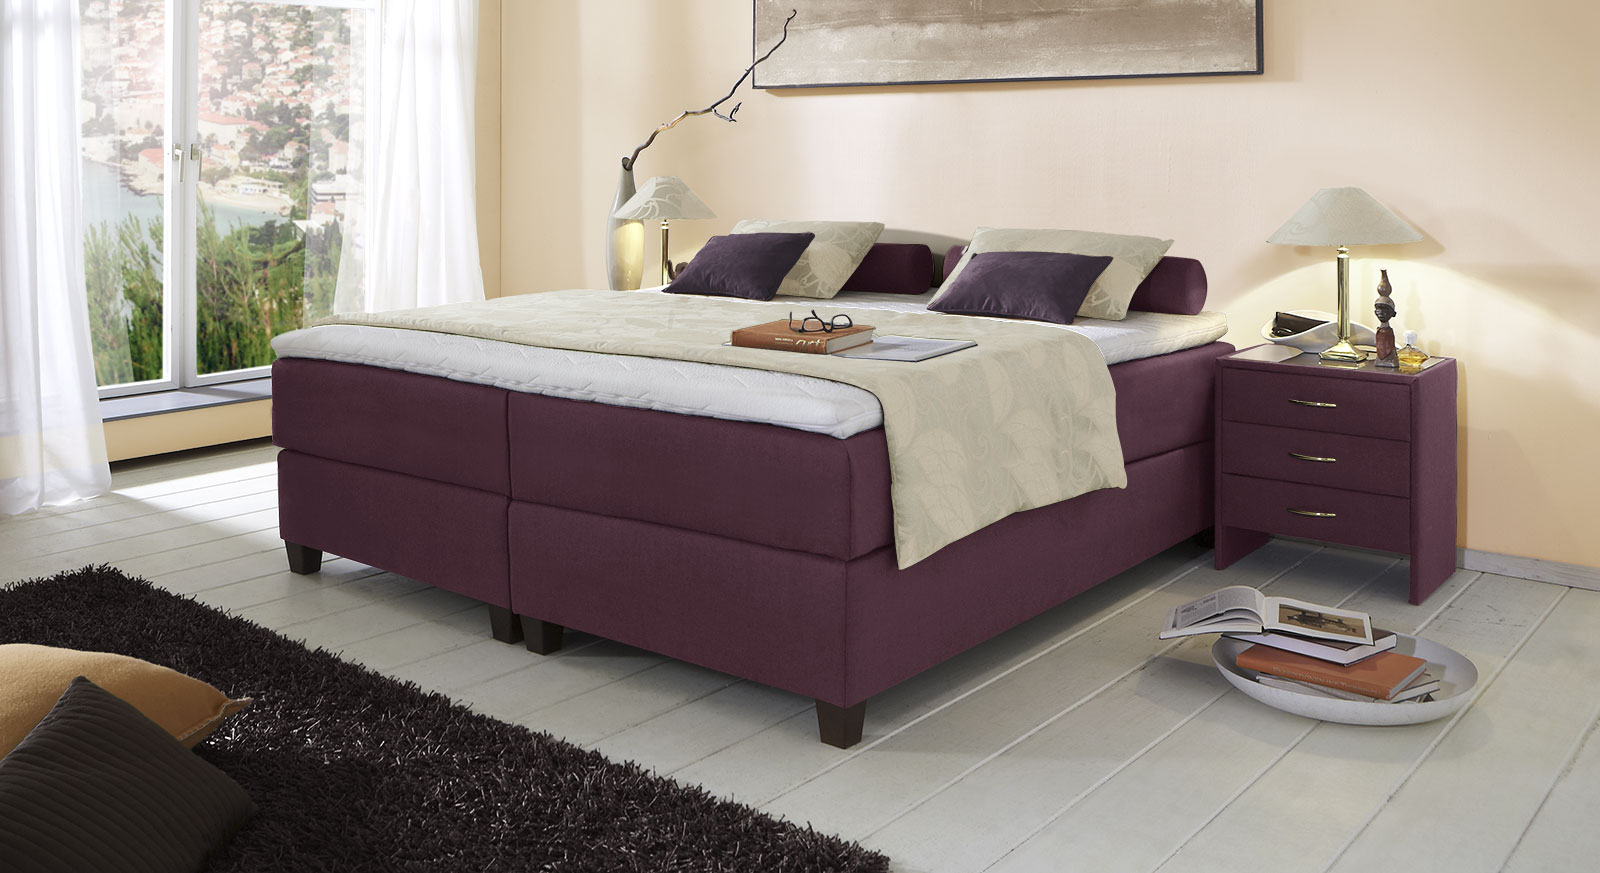 Boxspringliege Luciano in 66 cm Höhe mit Stoffbezug in Beere